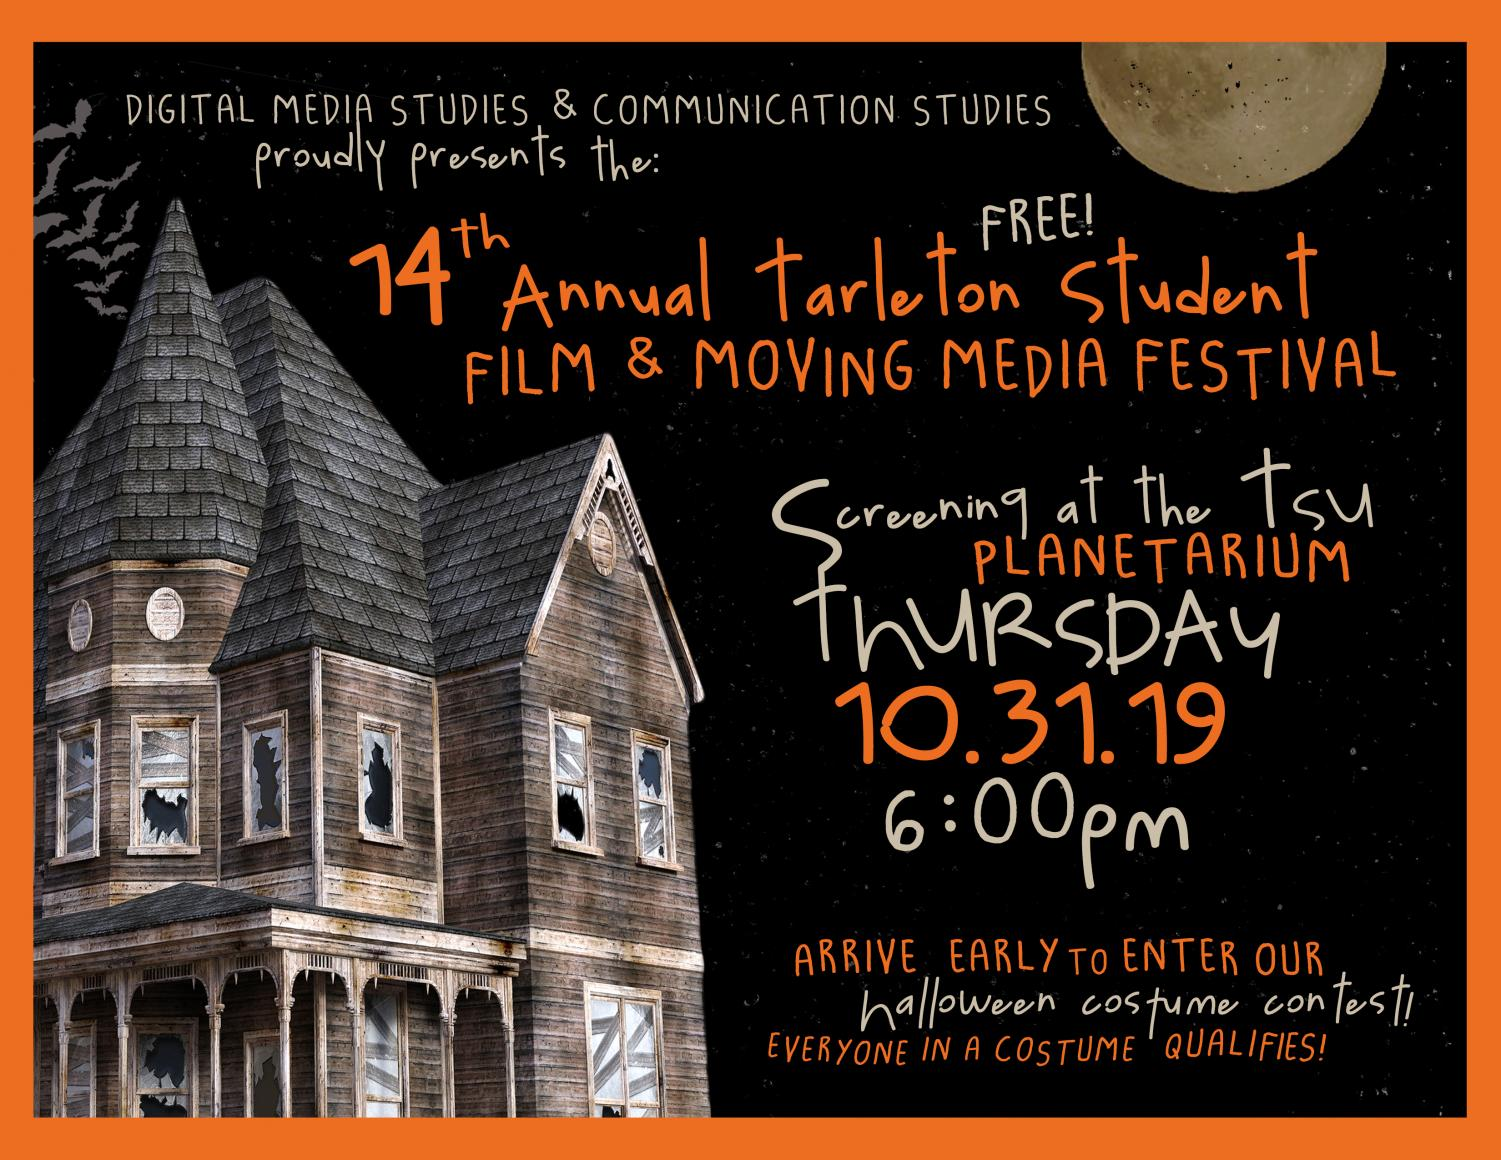 This film festival was held on the night of Halloween Oct. 31, 2019.